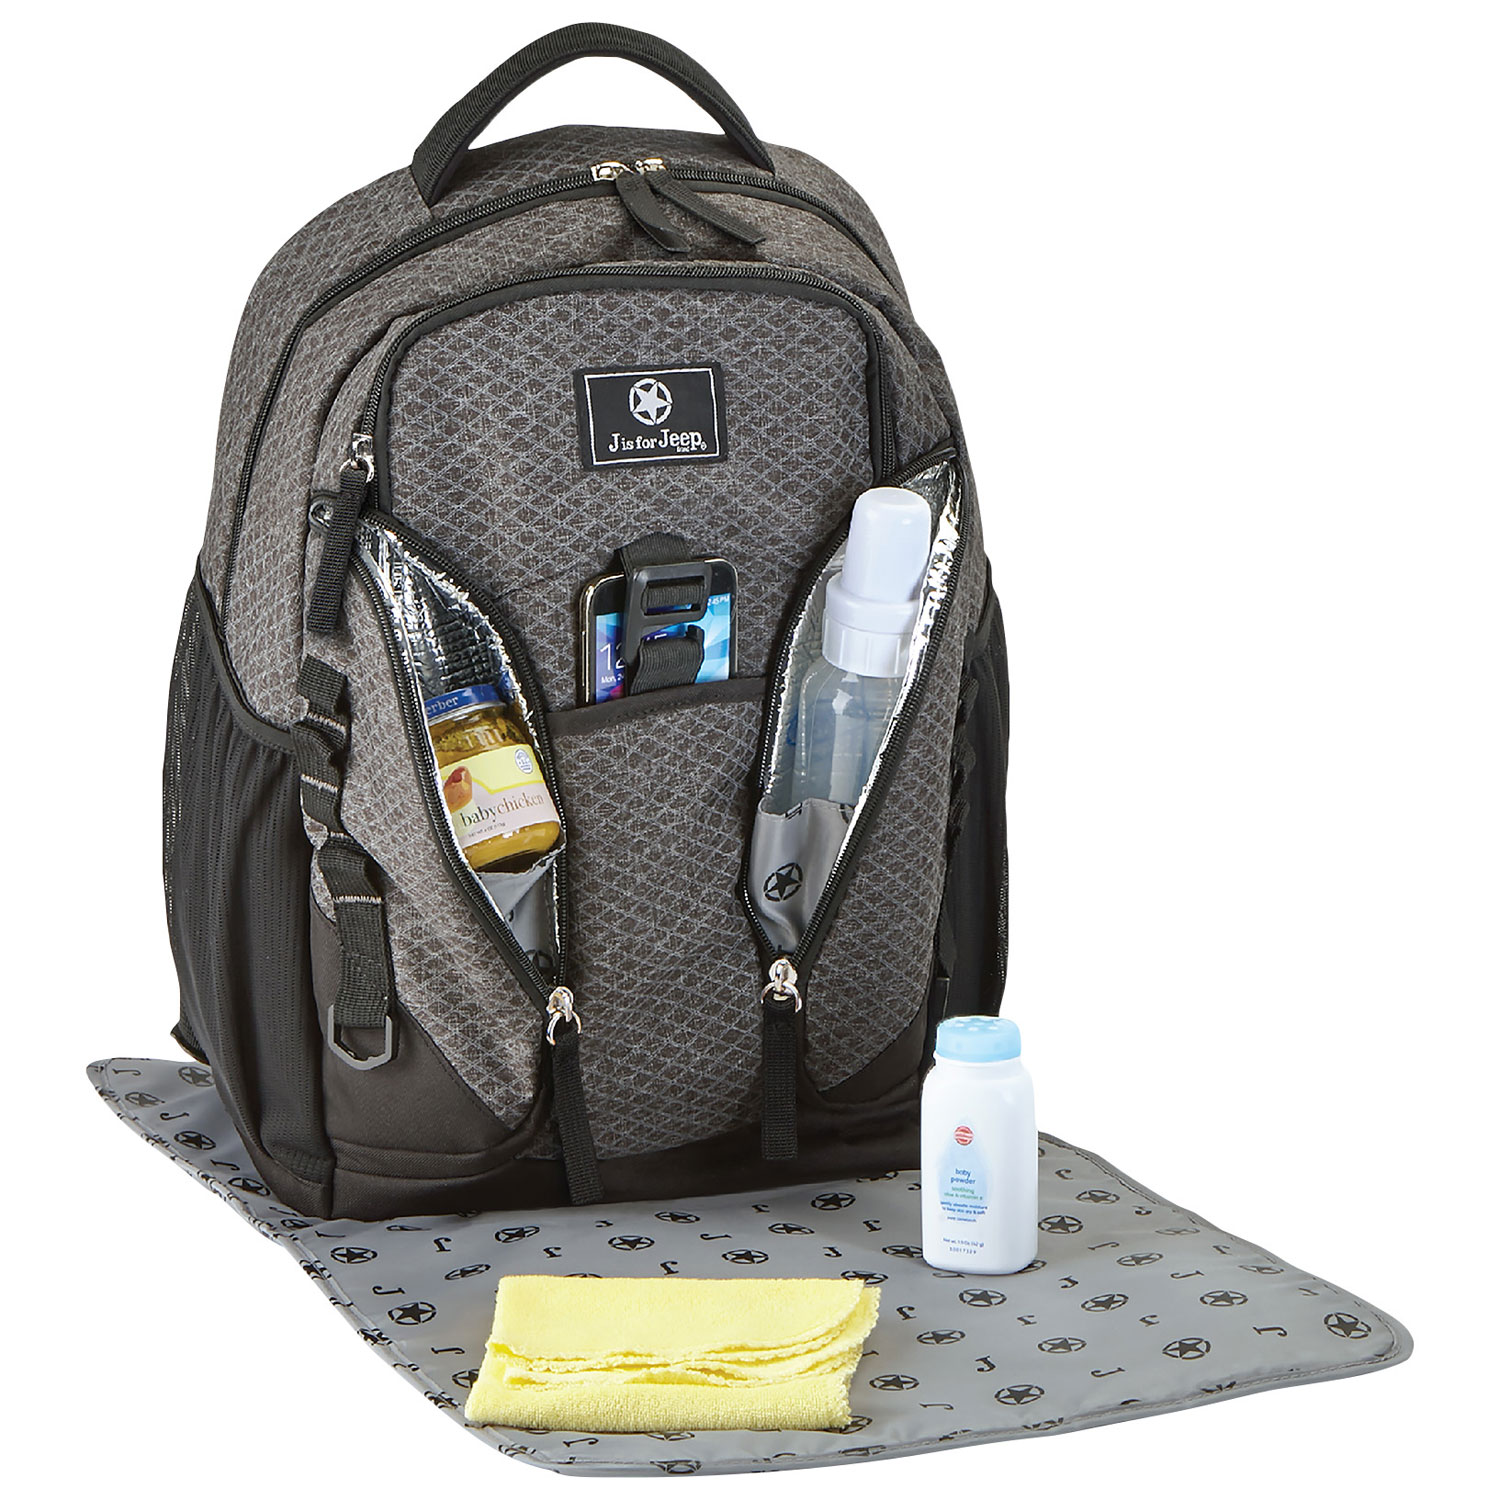 05760de0ee Jeep Adventurers Backpack Diaper Bag - Diamond Grey   Diaper Bags - Best  Buy Canada